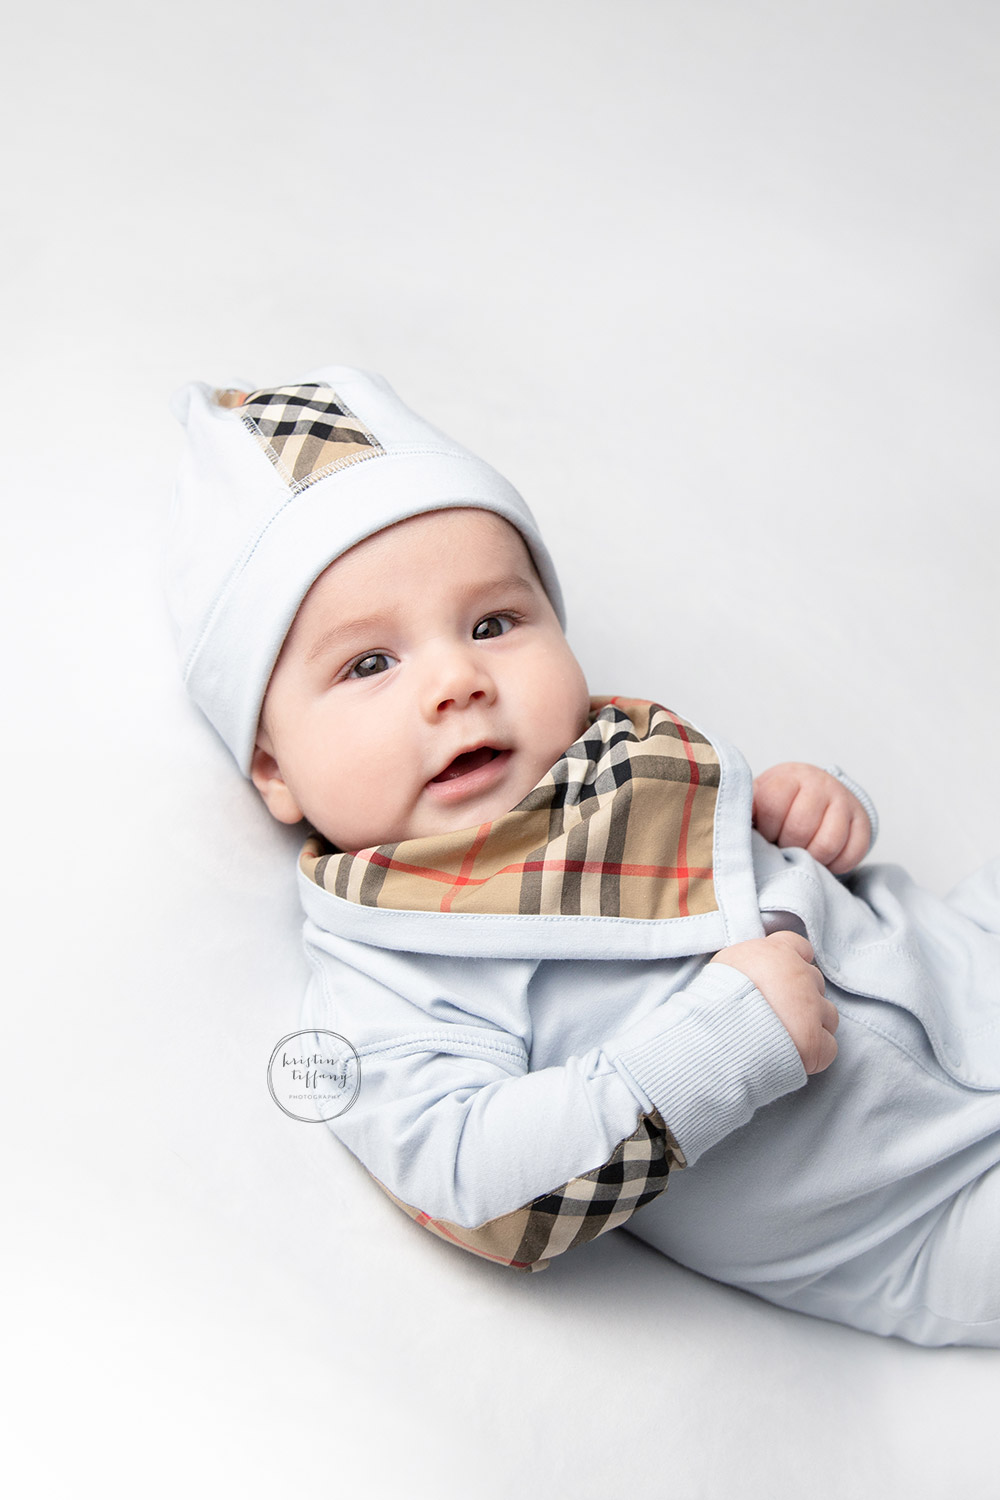 a photo from a baby session with Kristin Tiffany Photography